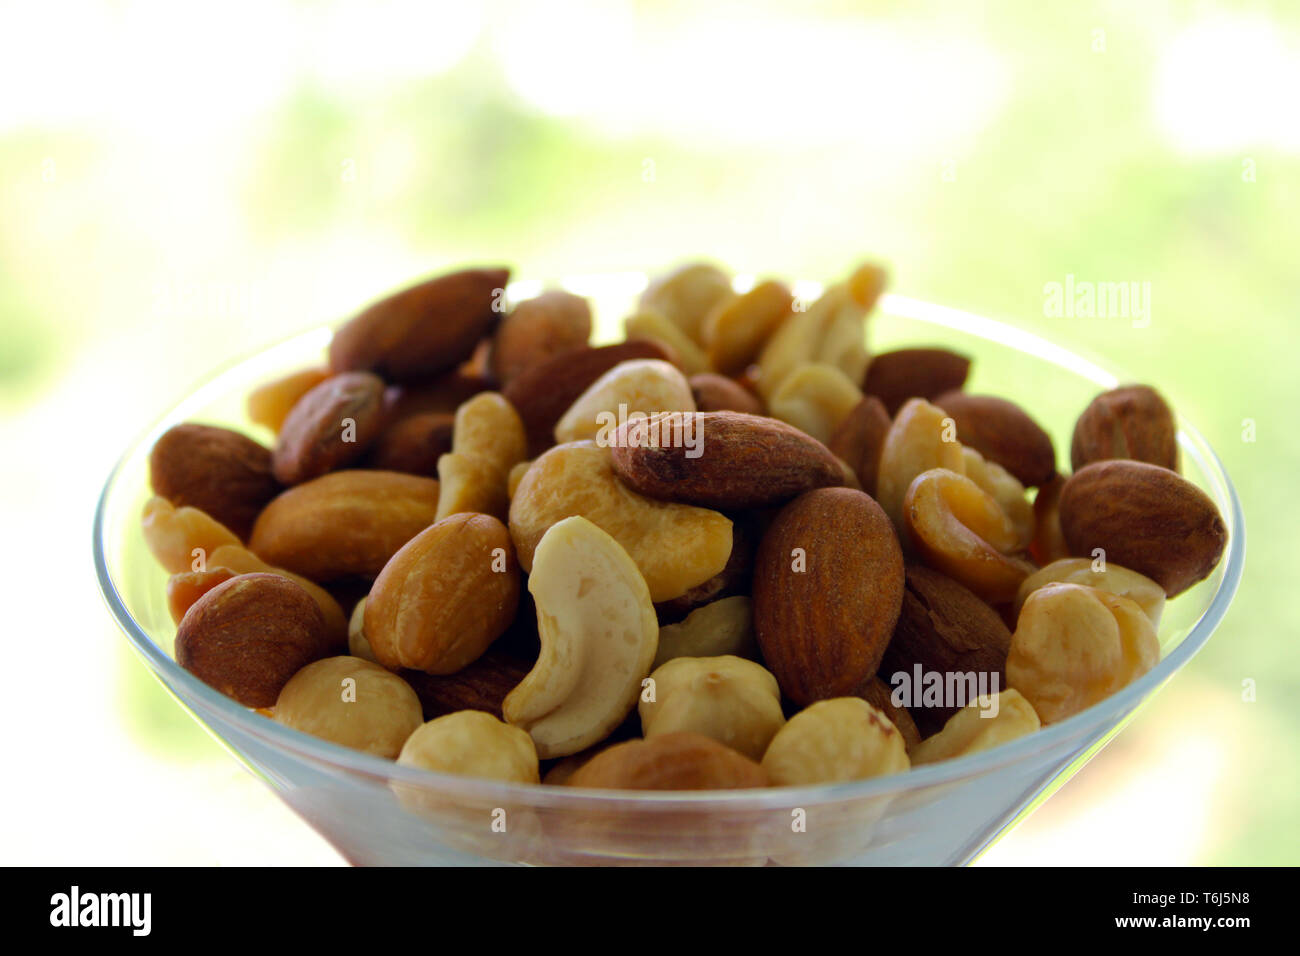 Mixed nuts in the bowl - Stock Image